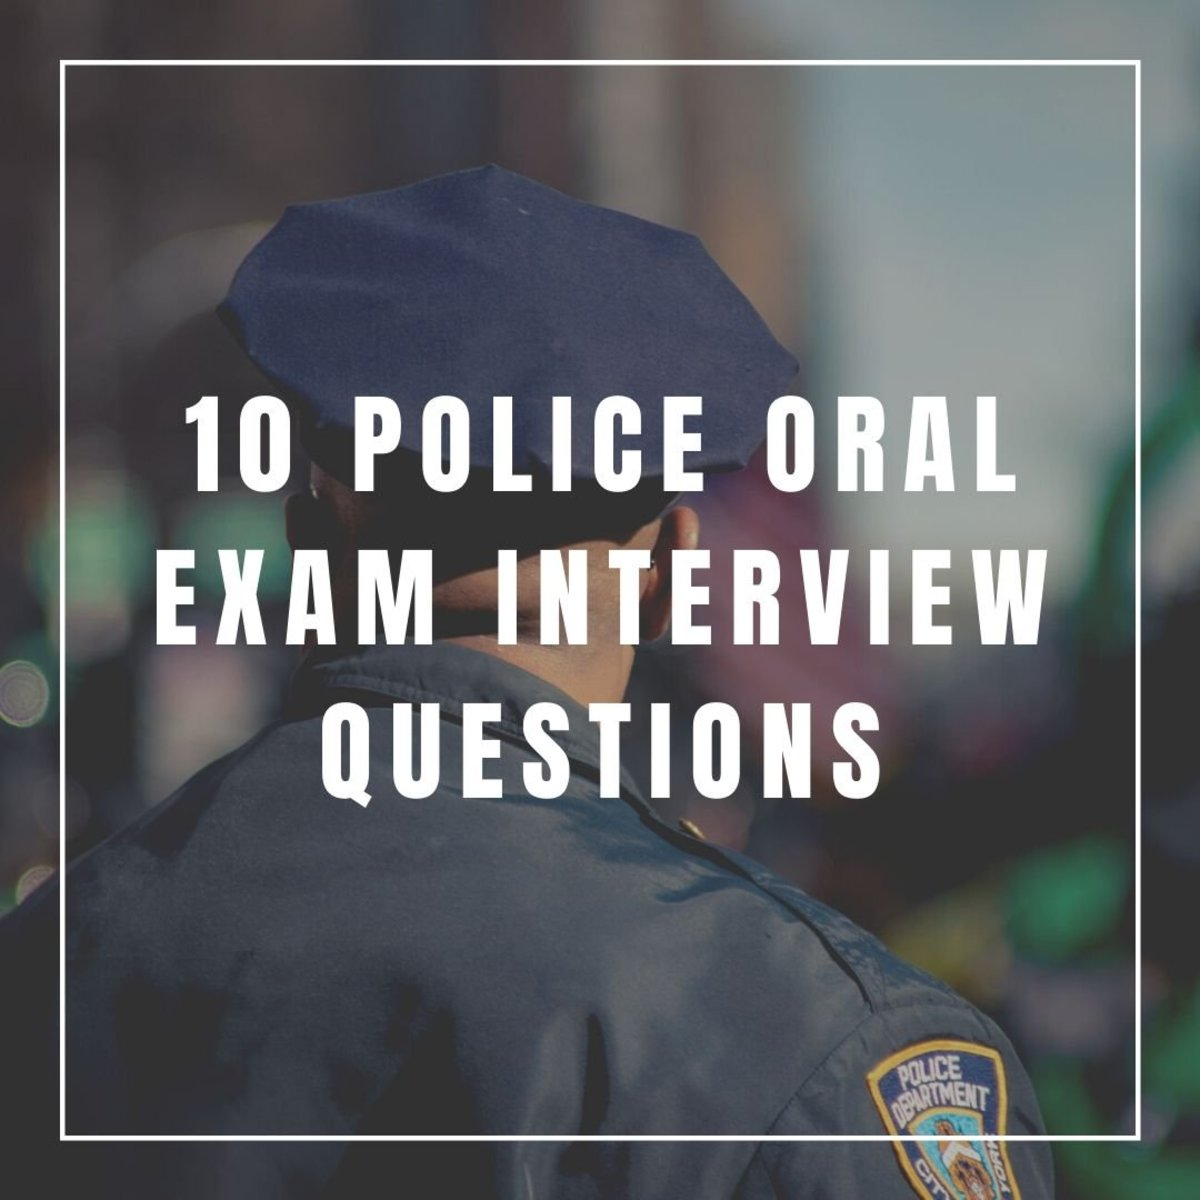 Police Oral Board Exam:  Top 10 Commonly Asked Interview Questions